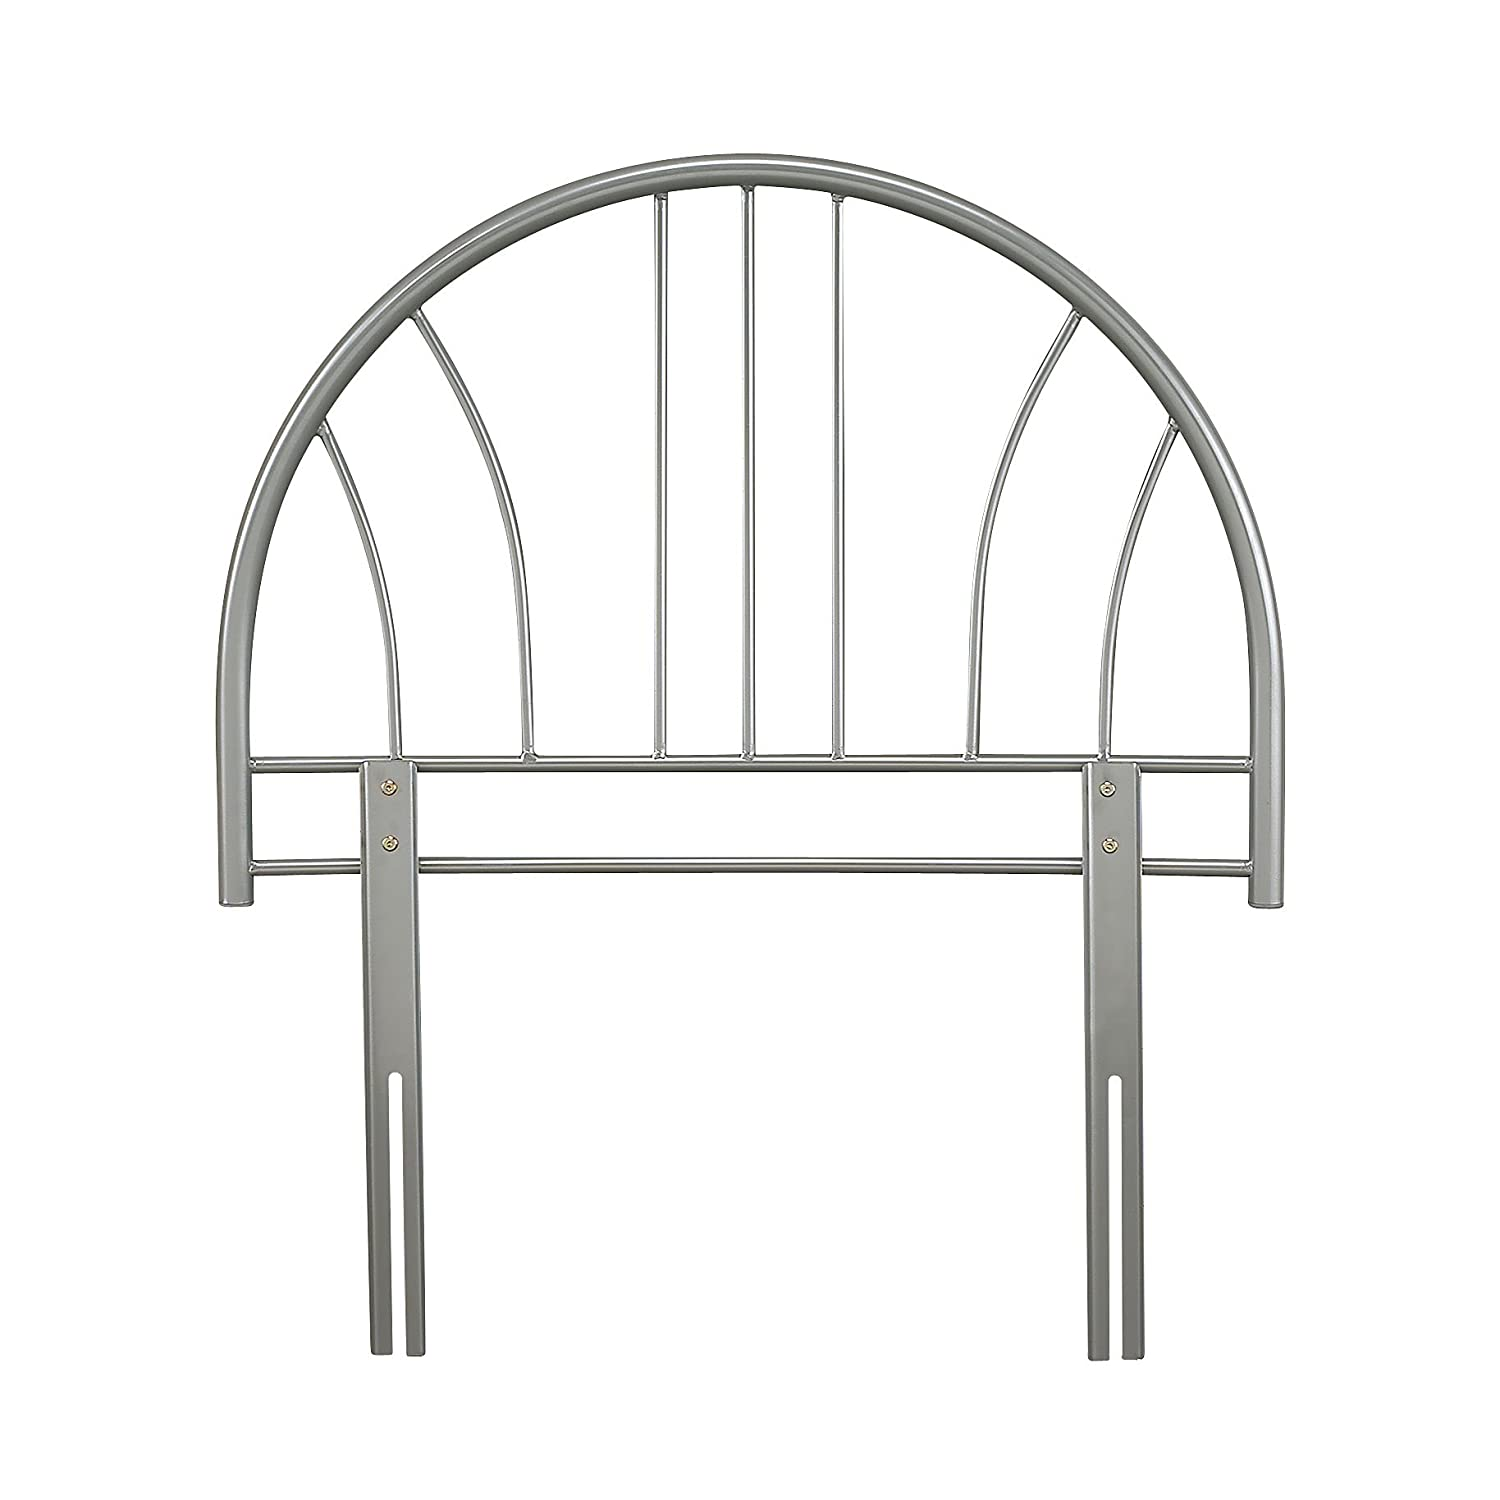 Metal Beds Collection by Serene Furnishings - Annabelle Metal Single Headboard - White colour W-90cm, H-65cm comes in 3 Colours SF Ltd